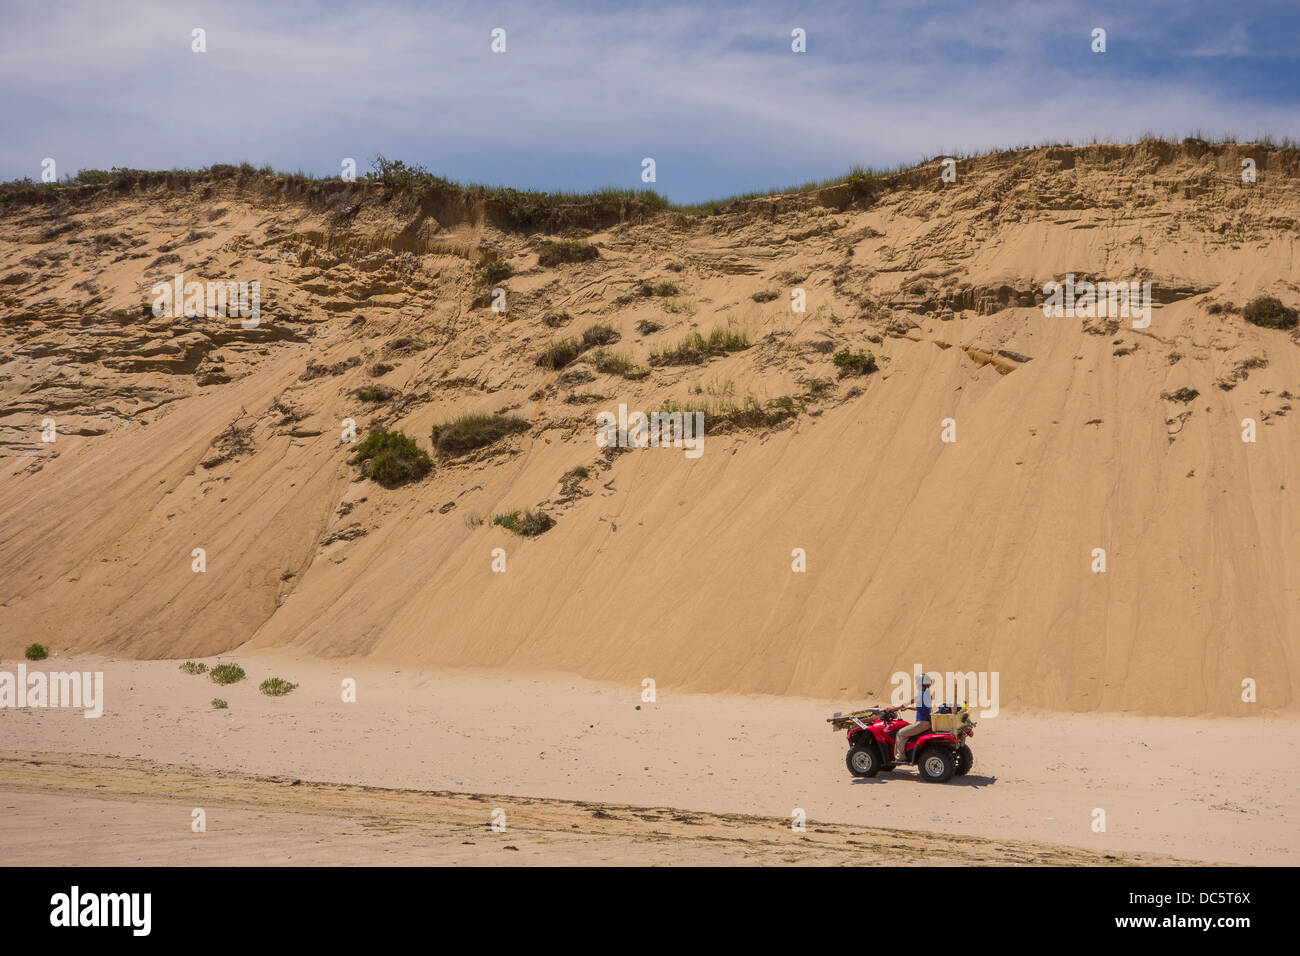 CAPE COD, MASSACHUSETTS, USA - ATV and sand dunes at White Crest beach near town of Wellfleet. - Stock Image